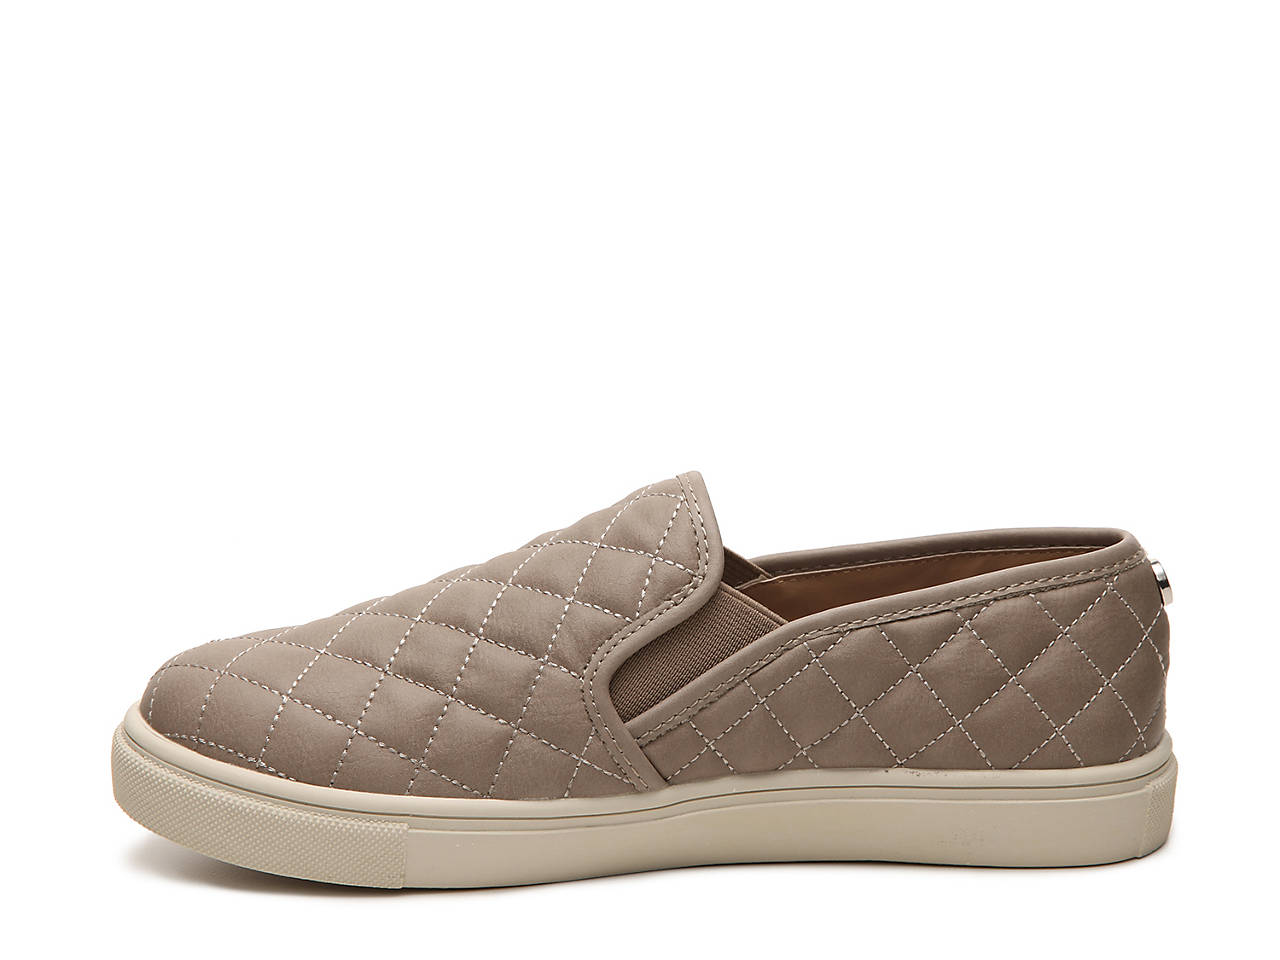 7c32370a3e74 Steve Madden Ecentrcq Slip-On Sneaker Women s Shoes